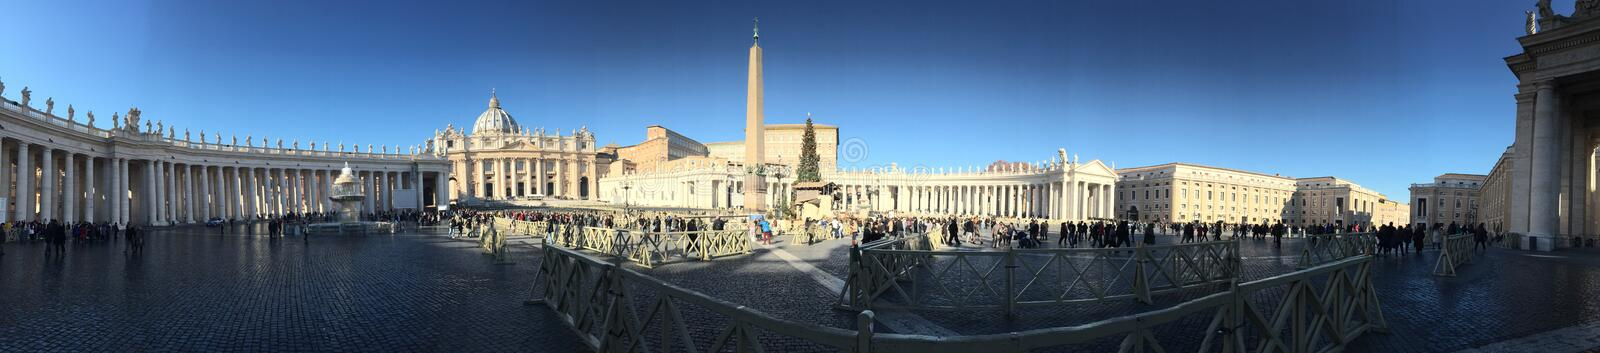 The Vatican just before Christmas royalty free stock photos